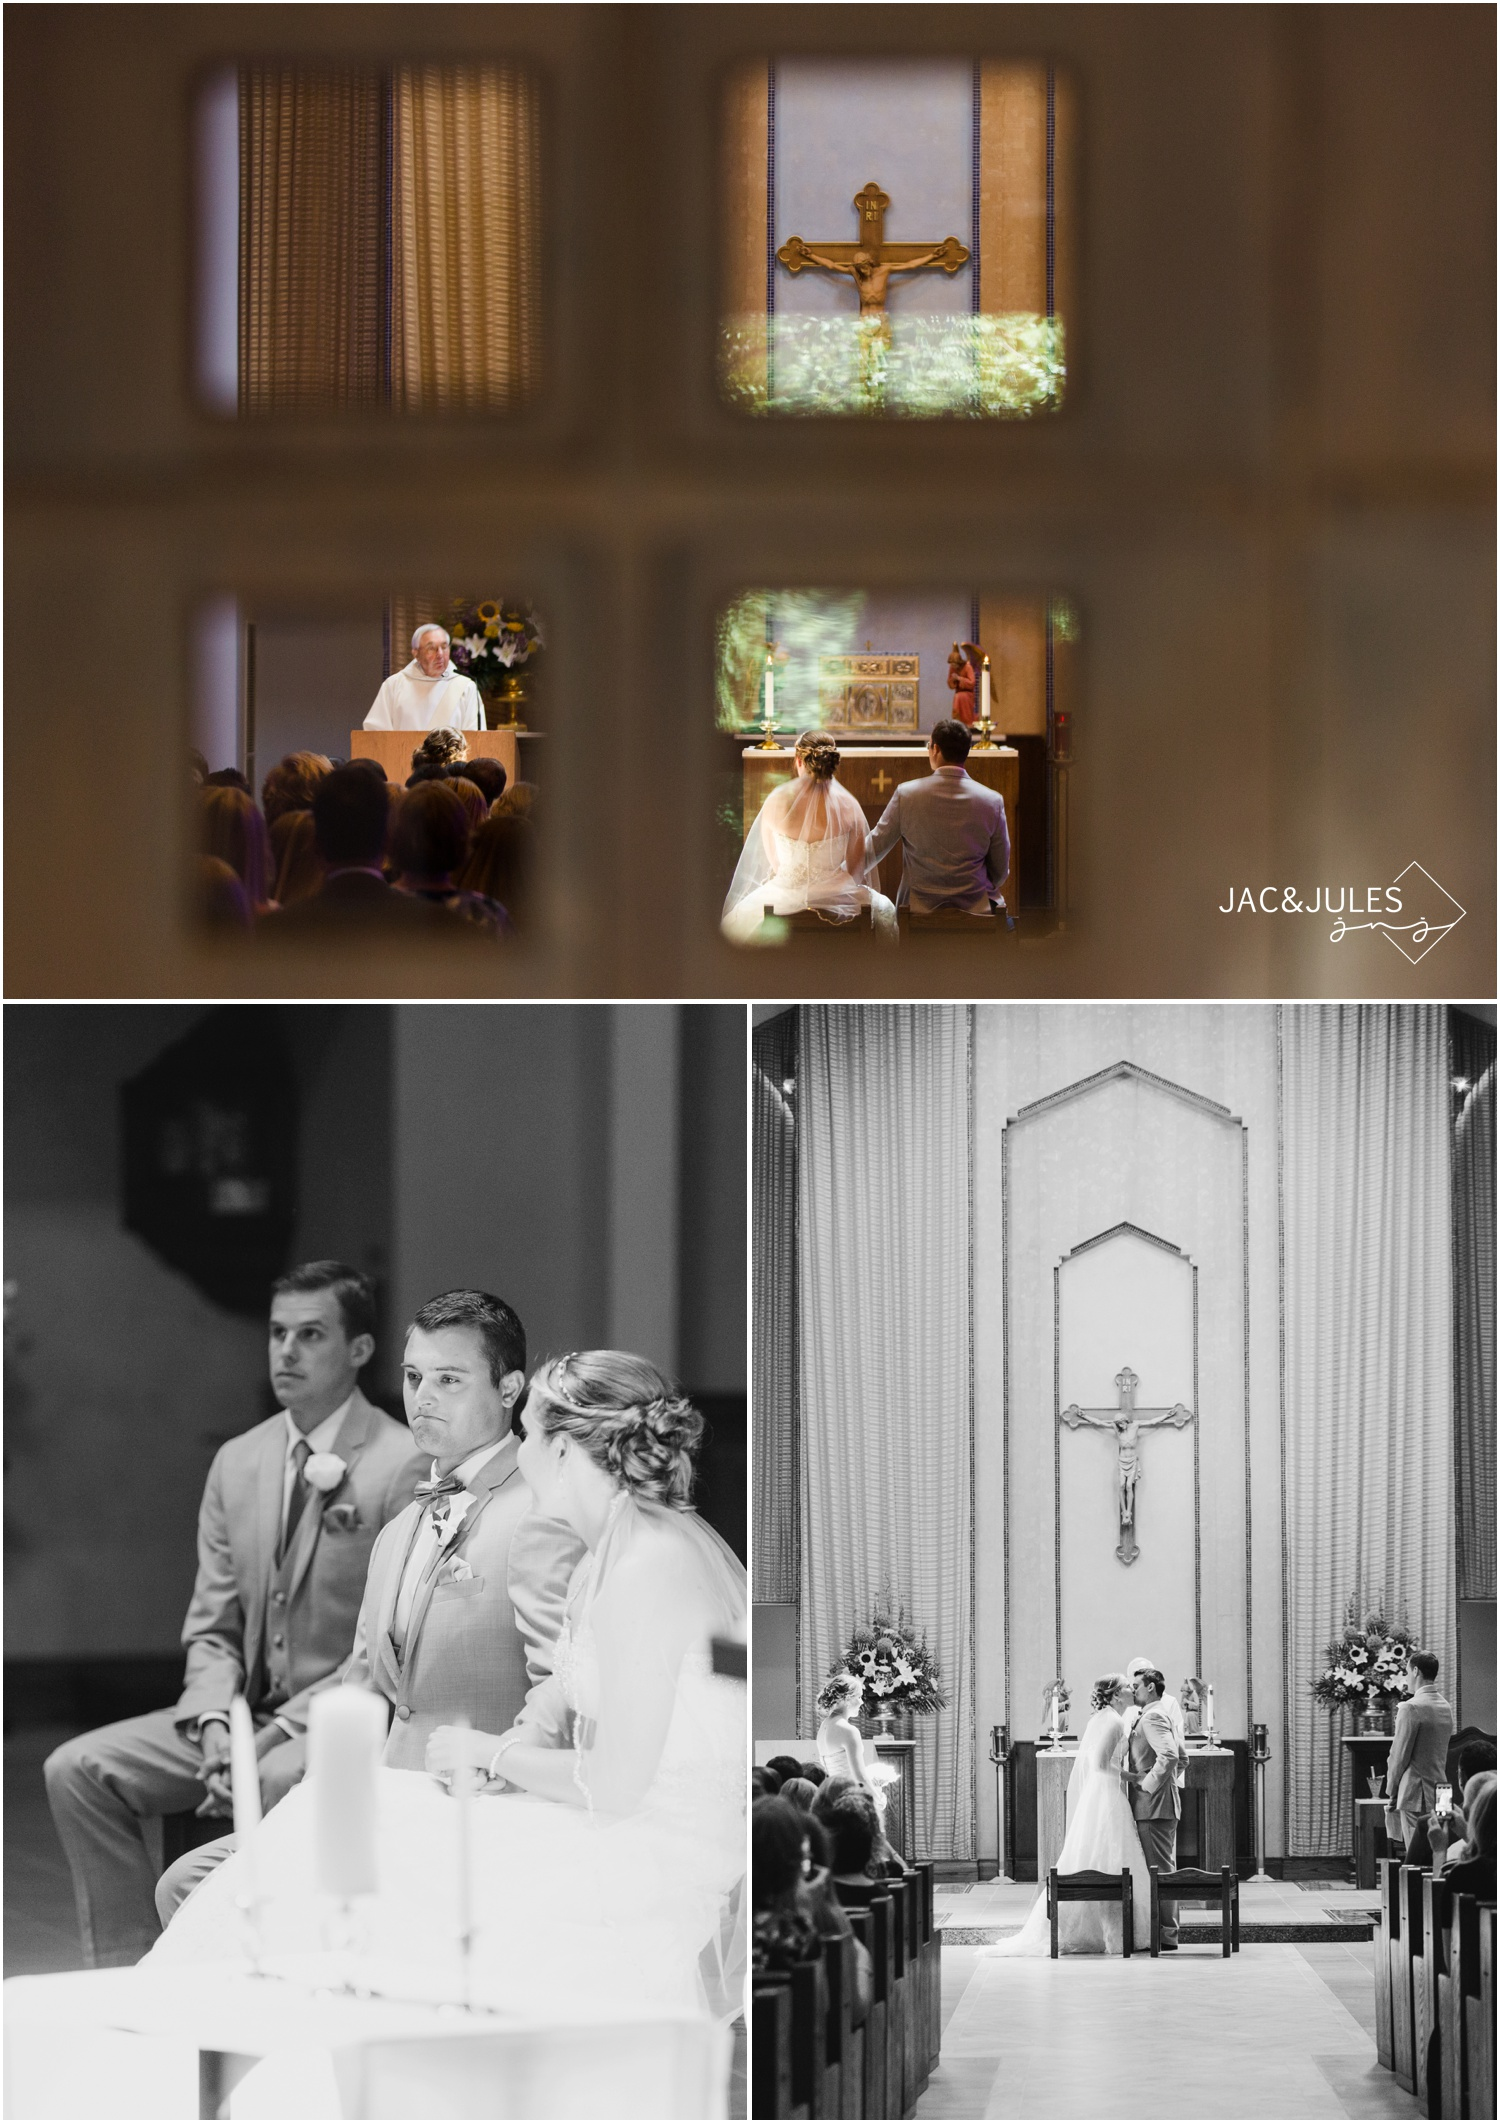 wedding ceremony, emotional groom, first kiss.